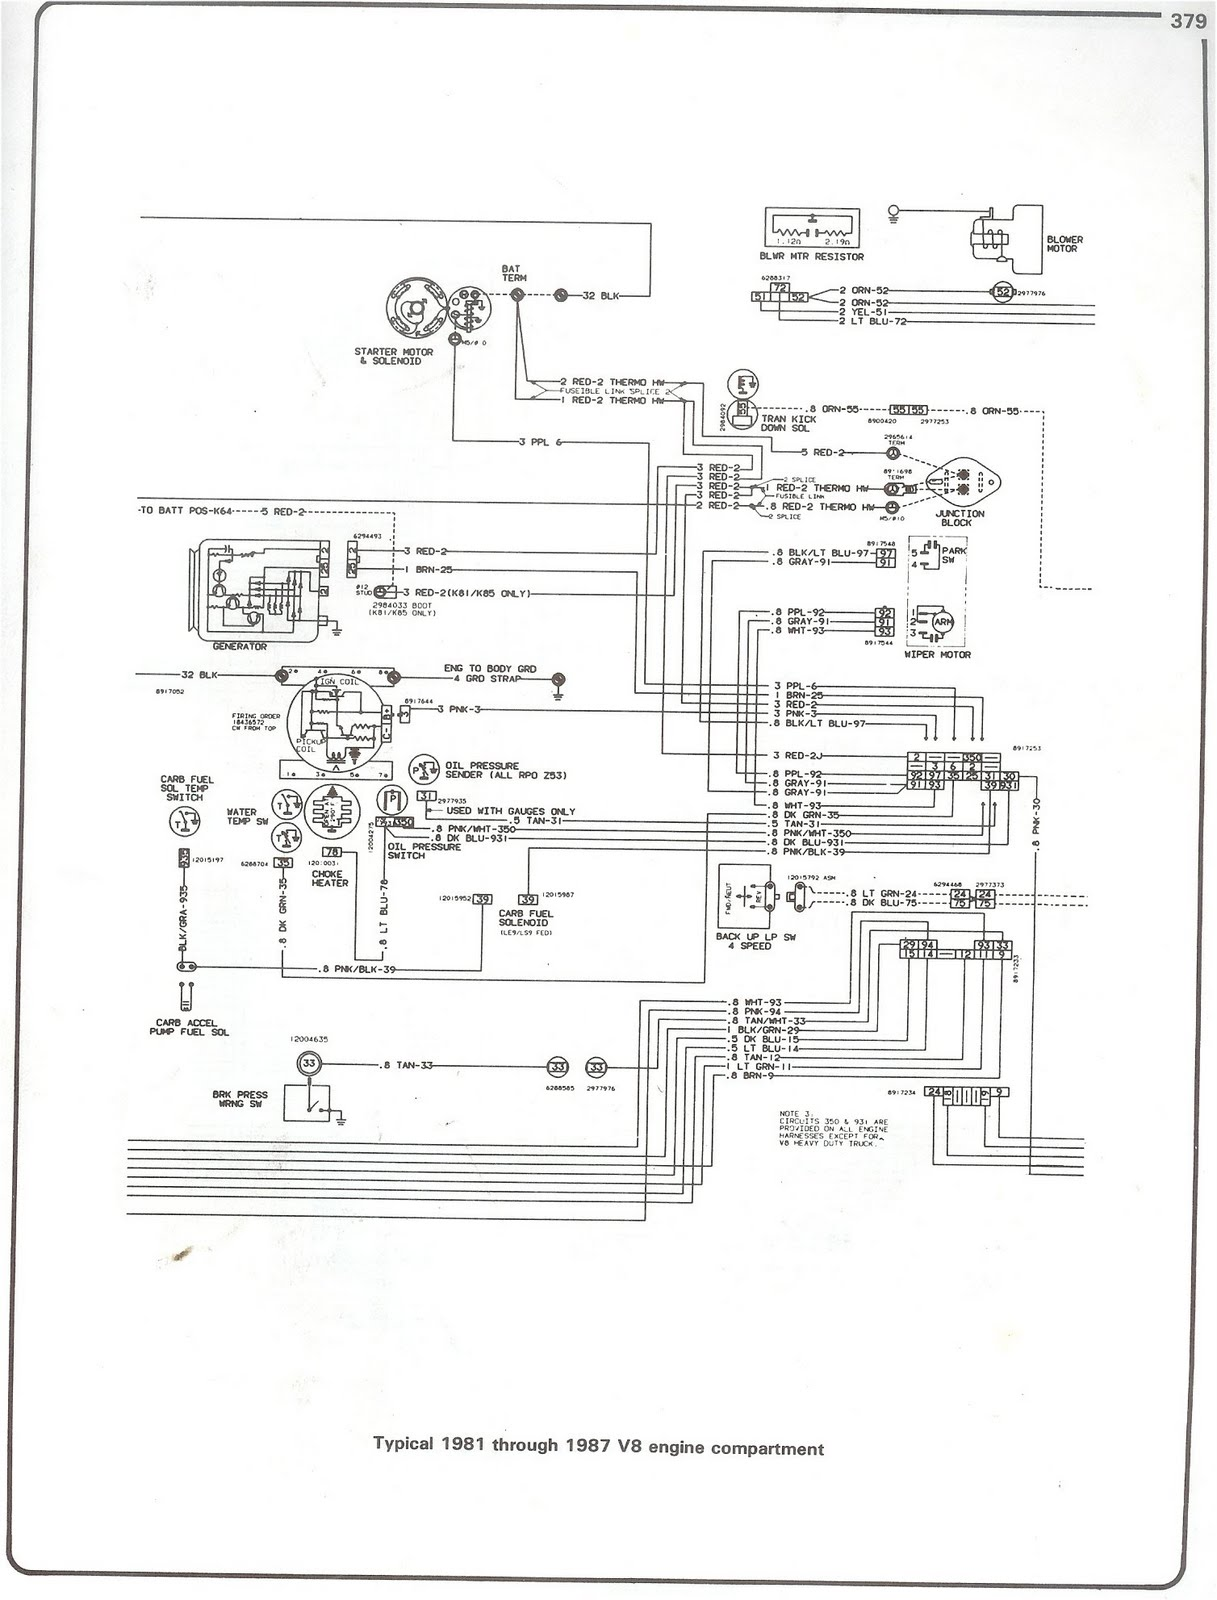 76 chevy fuse box for wiring diagram weekwiring diagram on 76 chevy truck wiring diagram for [ 1217 x 1600 Pixel ]